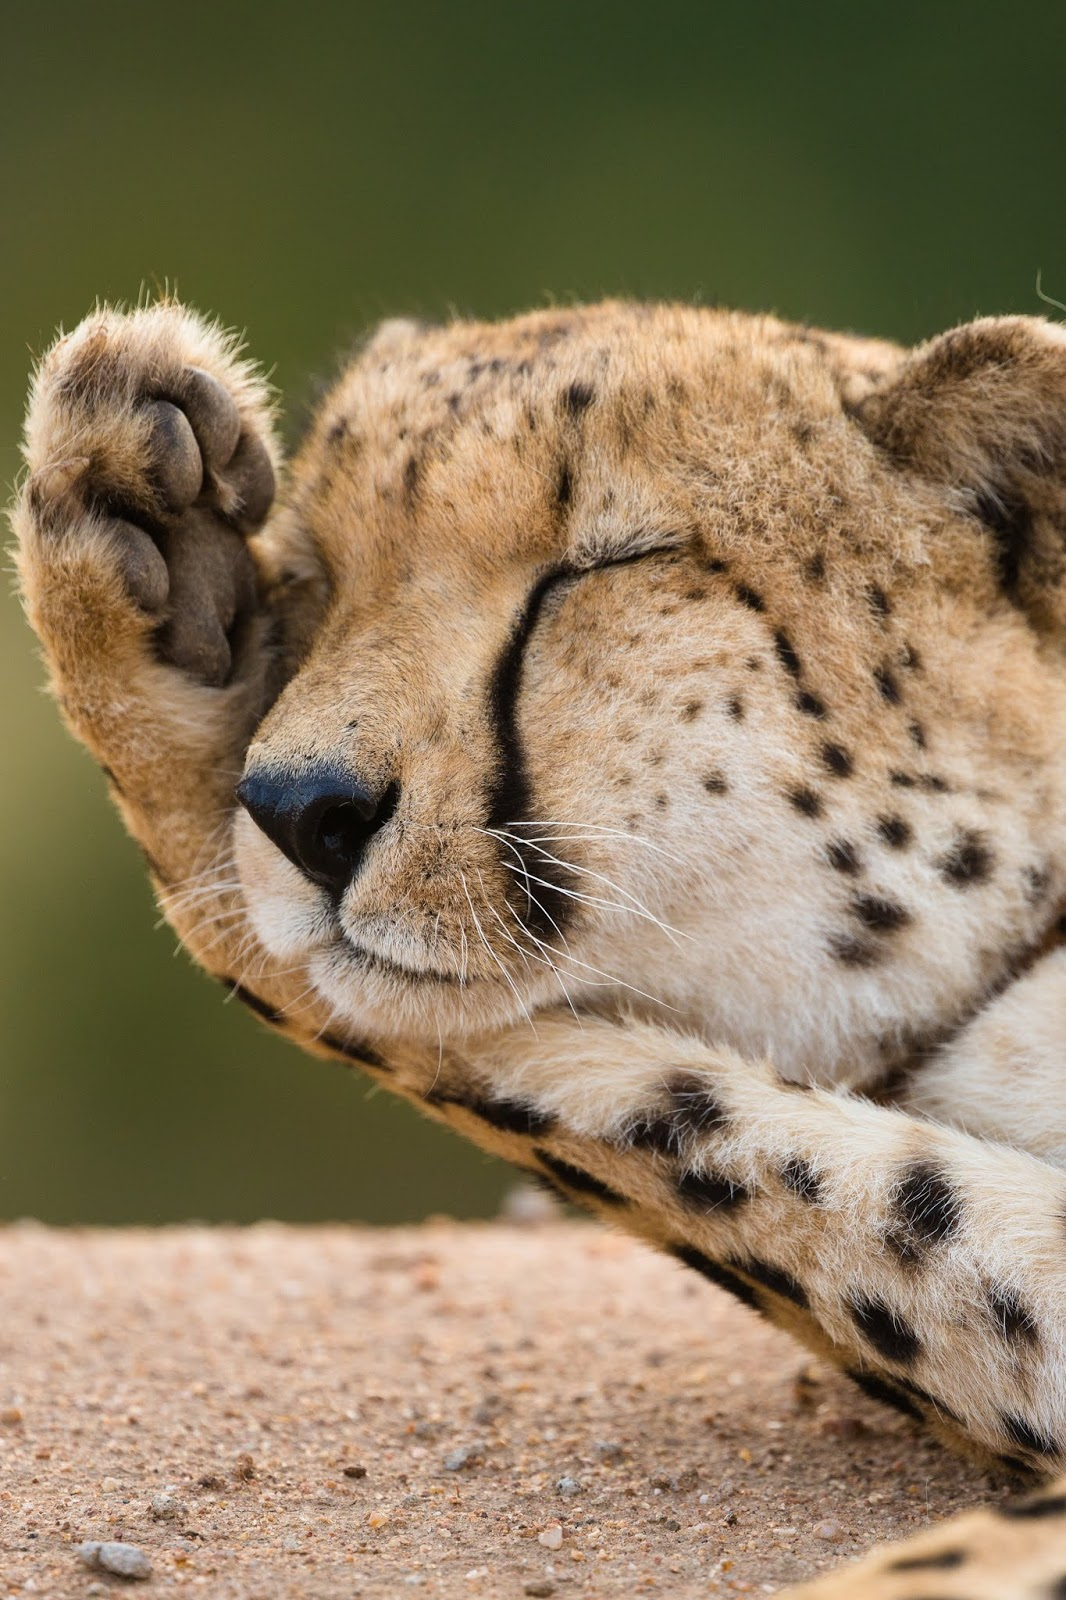 Picture of a sleepy cheetah.